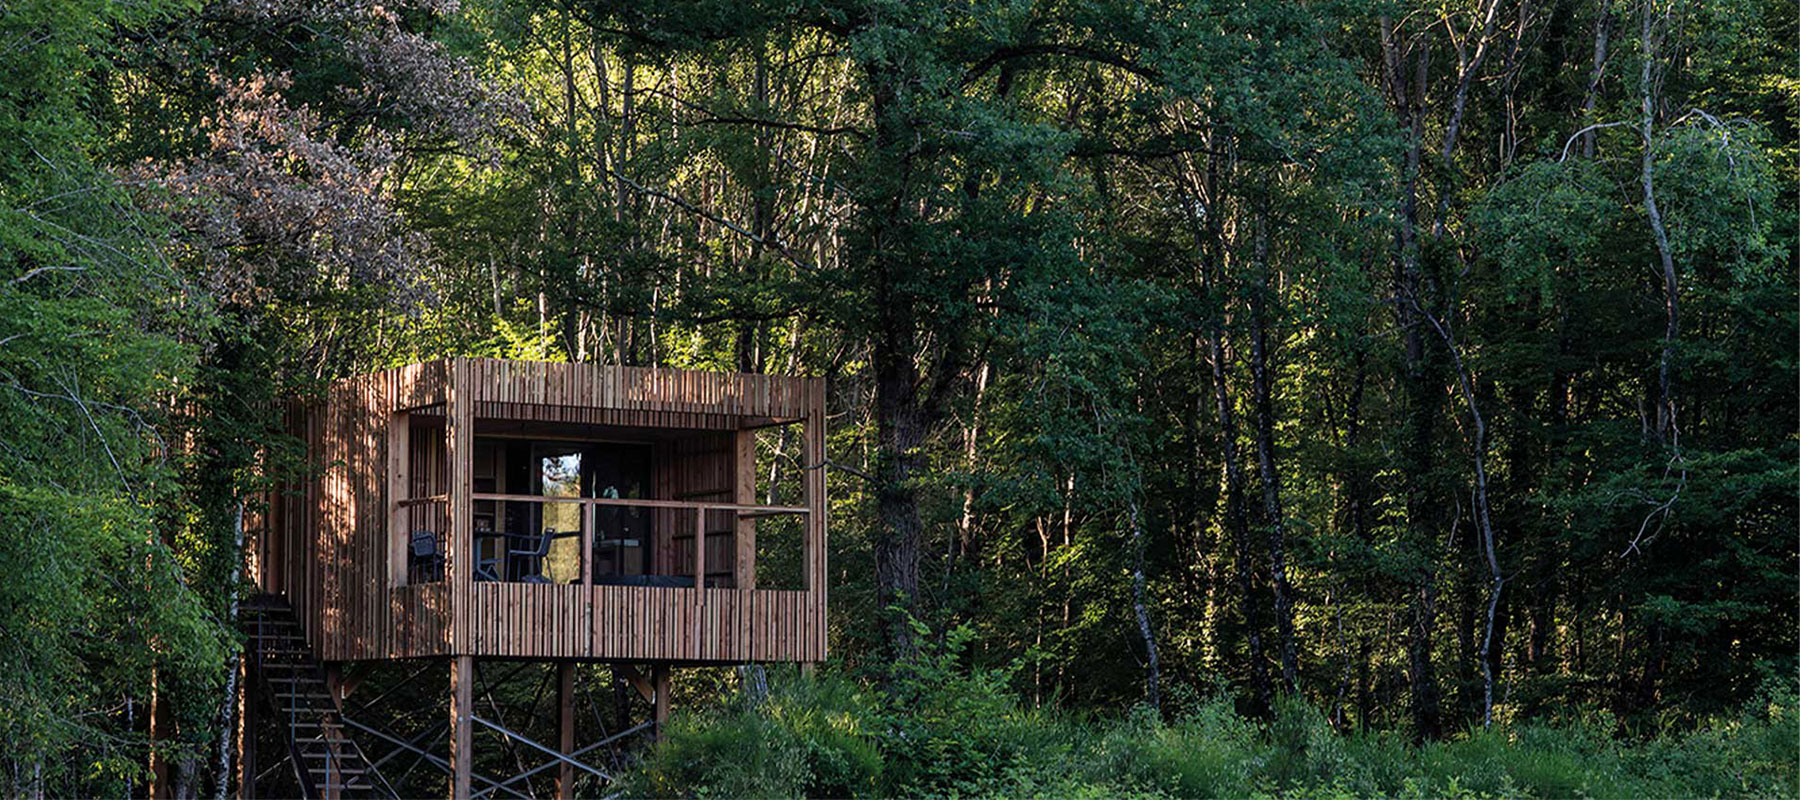 Loire Valley Lodges, an exceptional stay in lodges on stilts